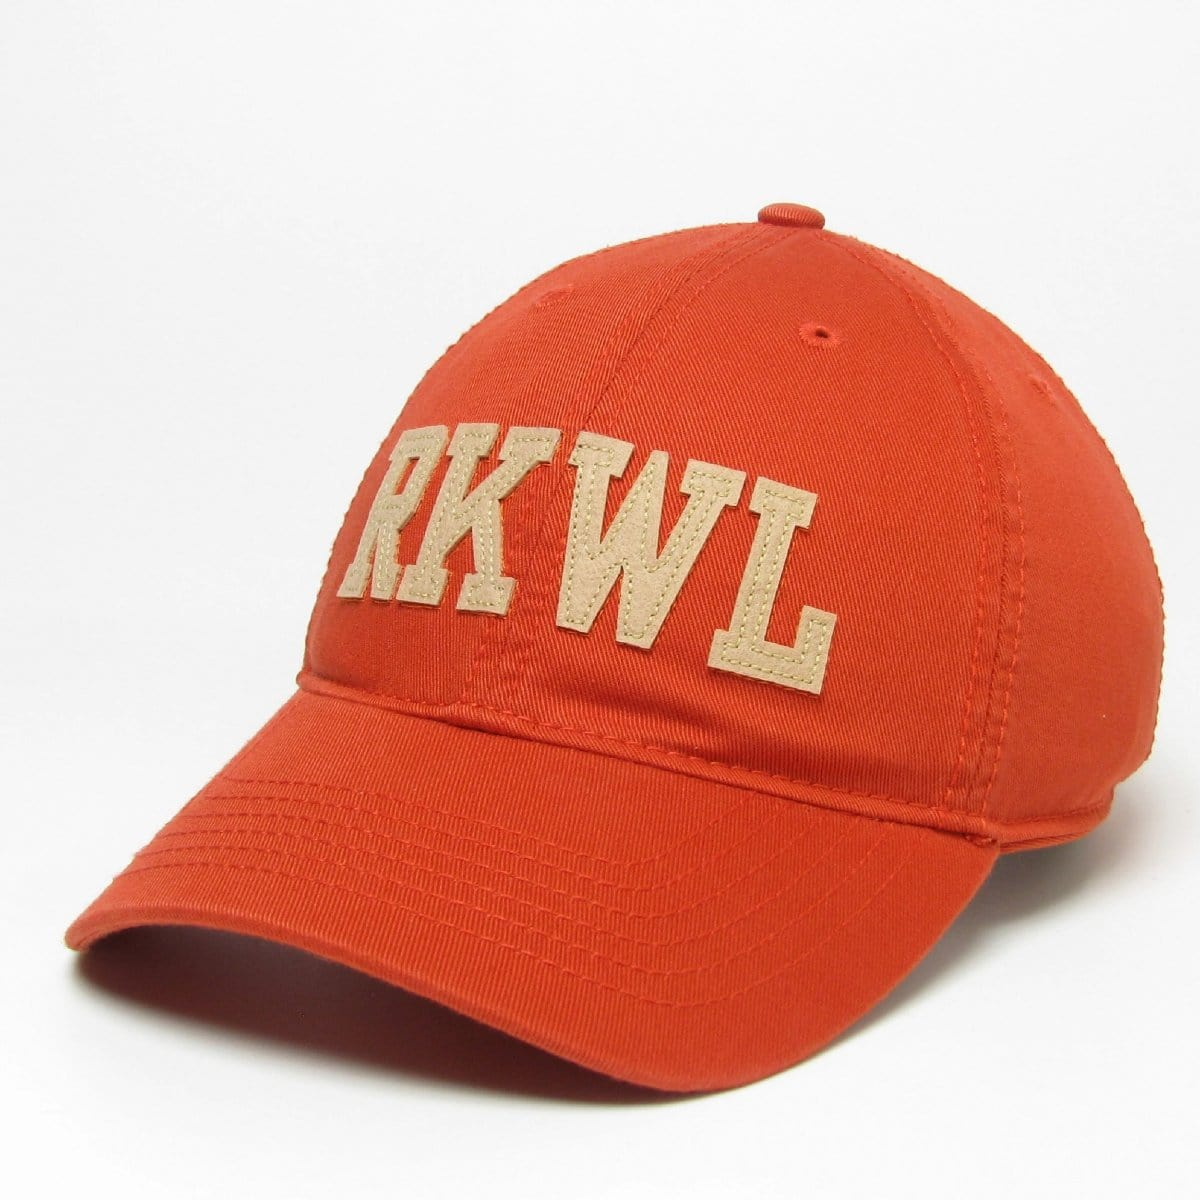 H2008 MANDARIN ROCKWALL RKWL THE UNIVERSITY HAT